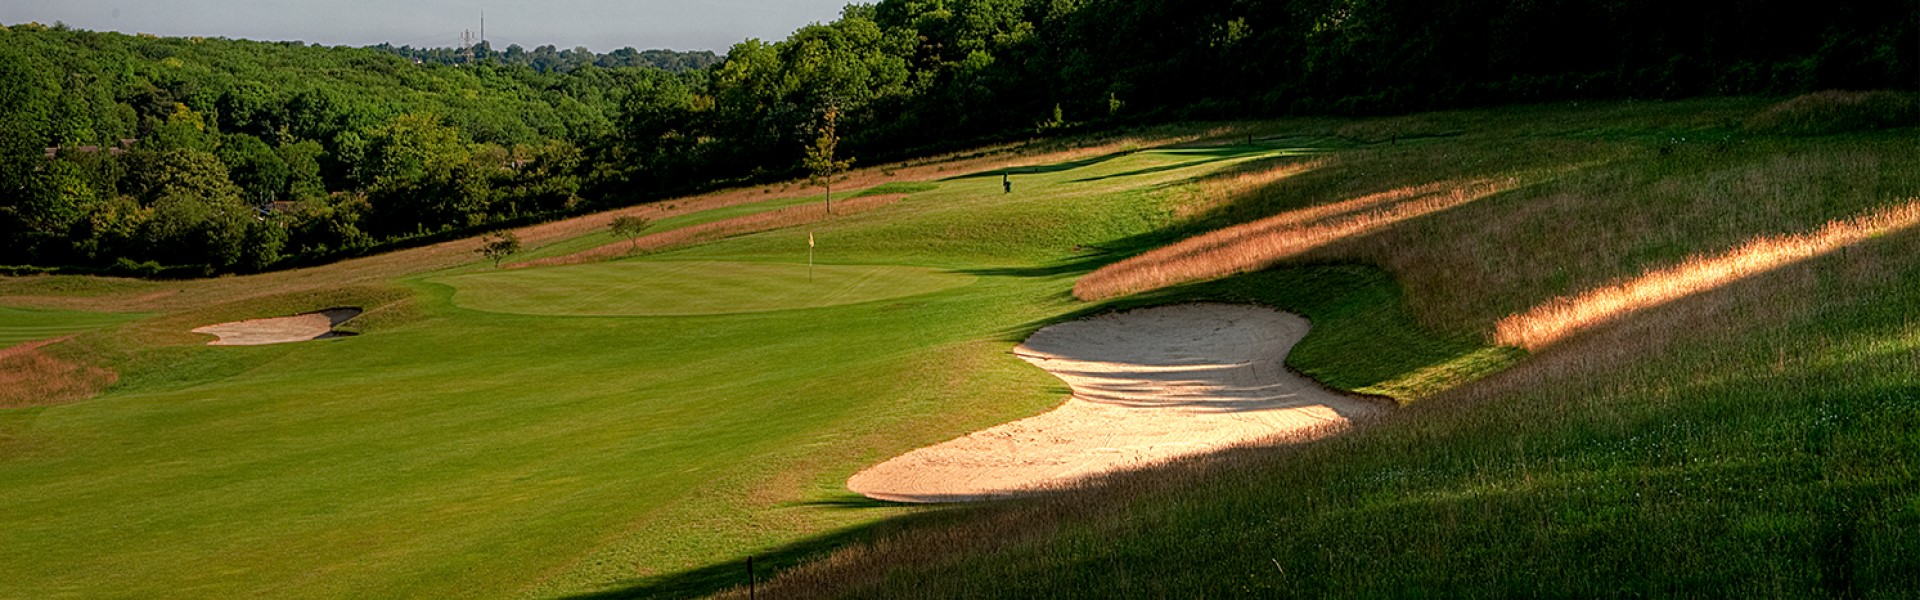 Play quality golf at Farleigh Golf Club in Surrey, England in 2019